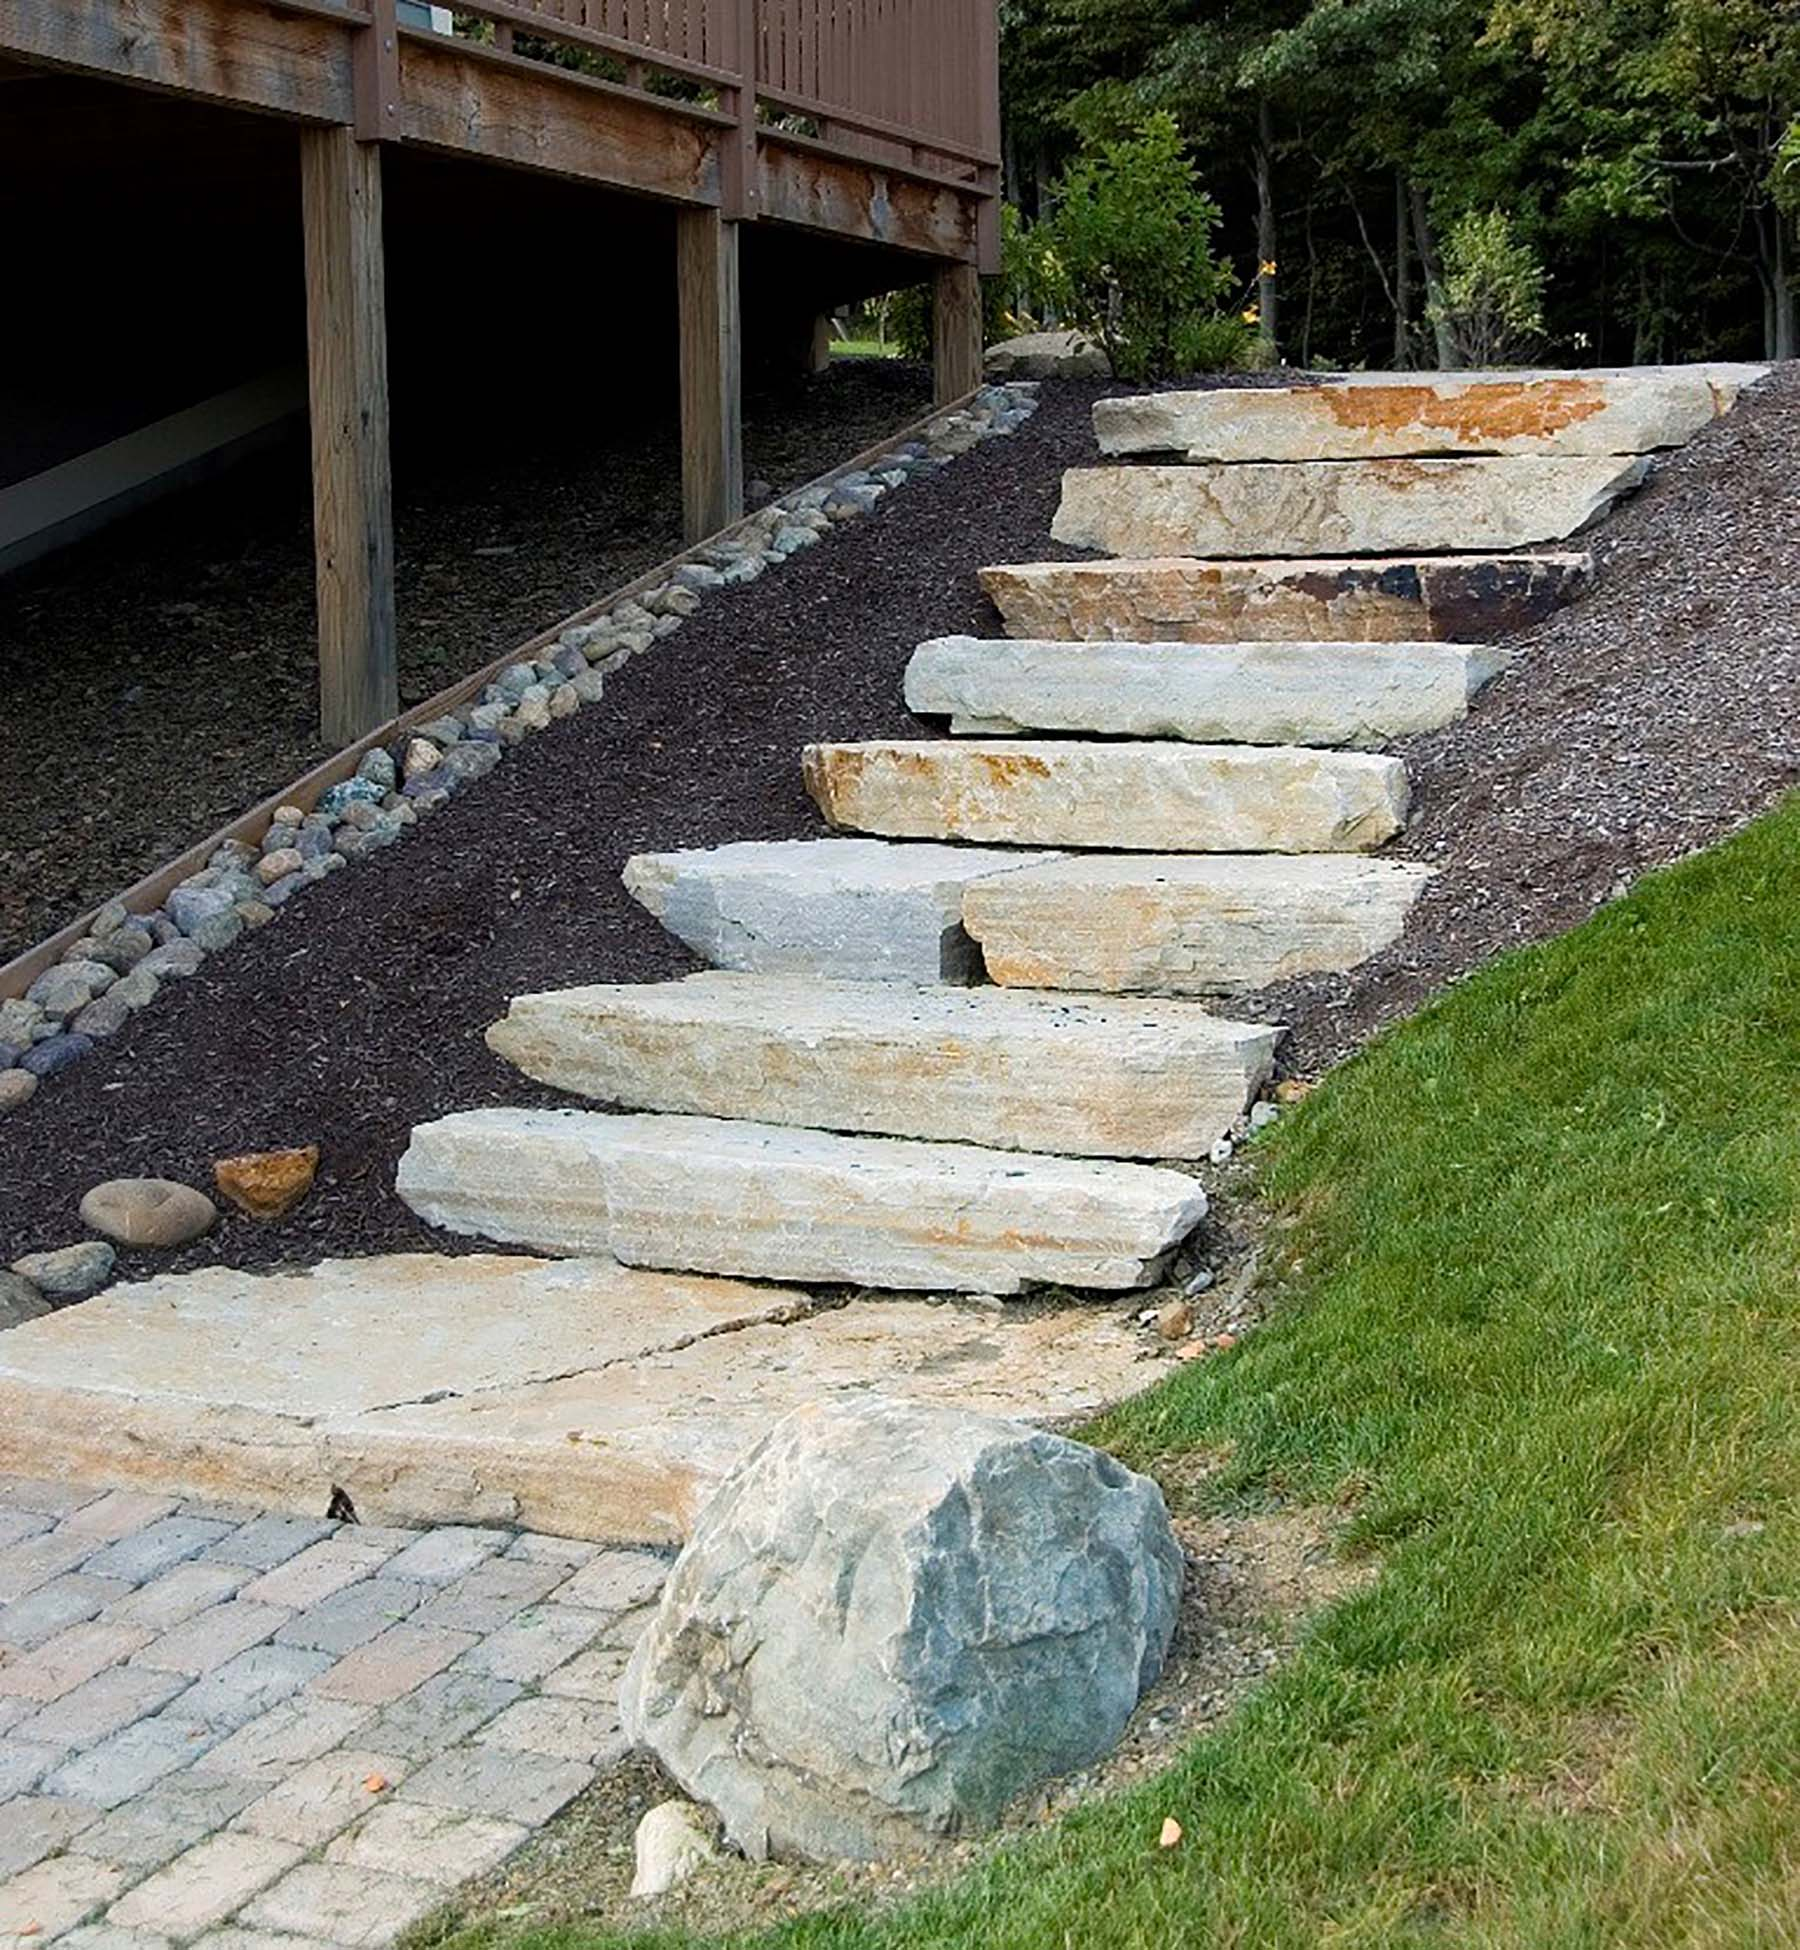 South Bay Quartzite natural stone slab staircase beside residential home